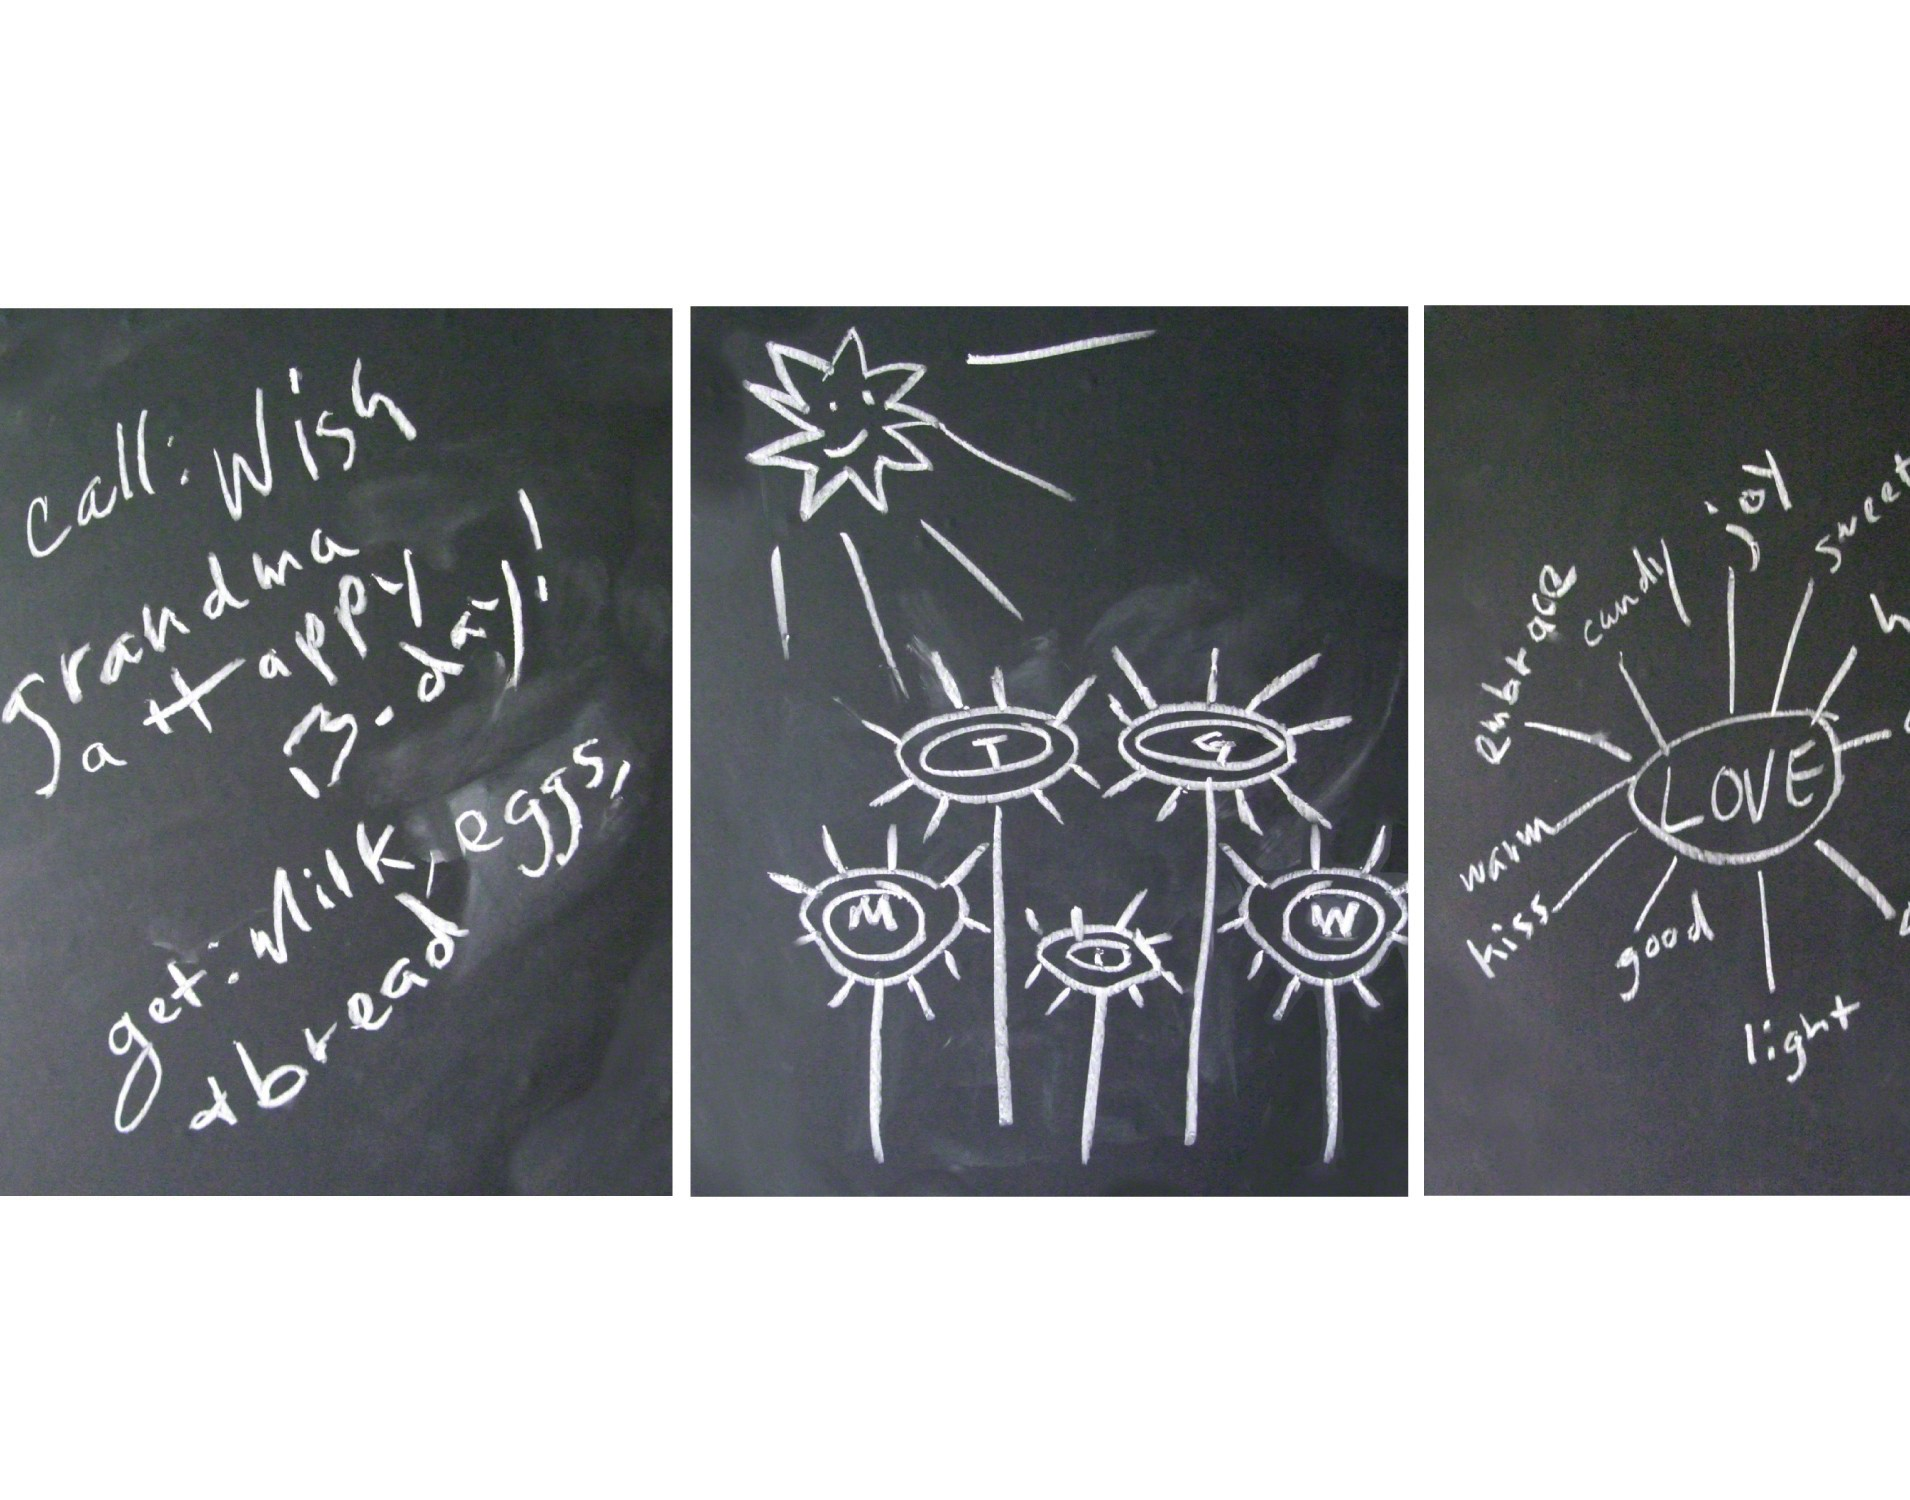 View larger image  sc 1 st  Baby Koo & Baby Koo - Mini Chalkboard Wall Decals by Wall Candy Arts